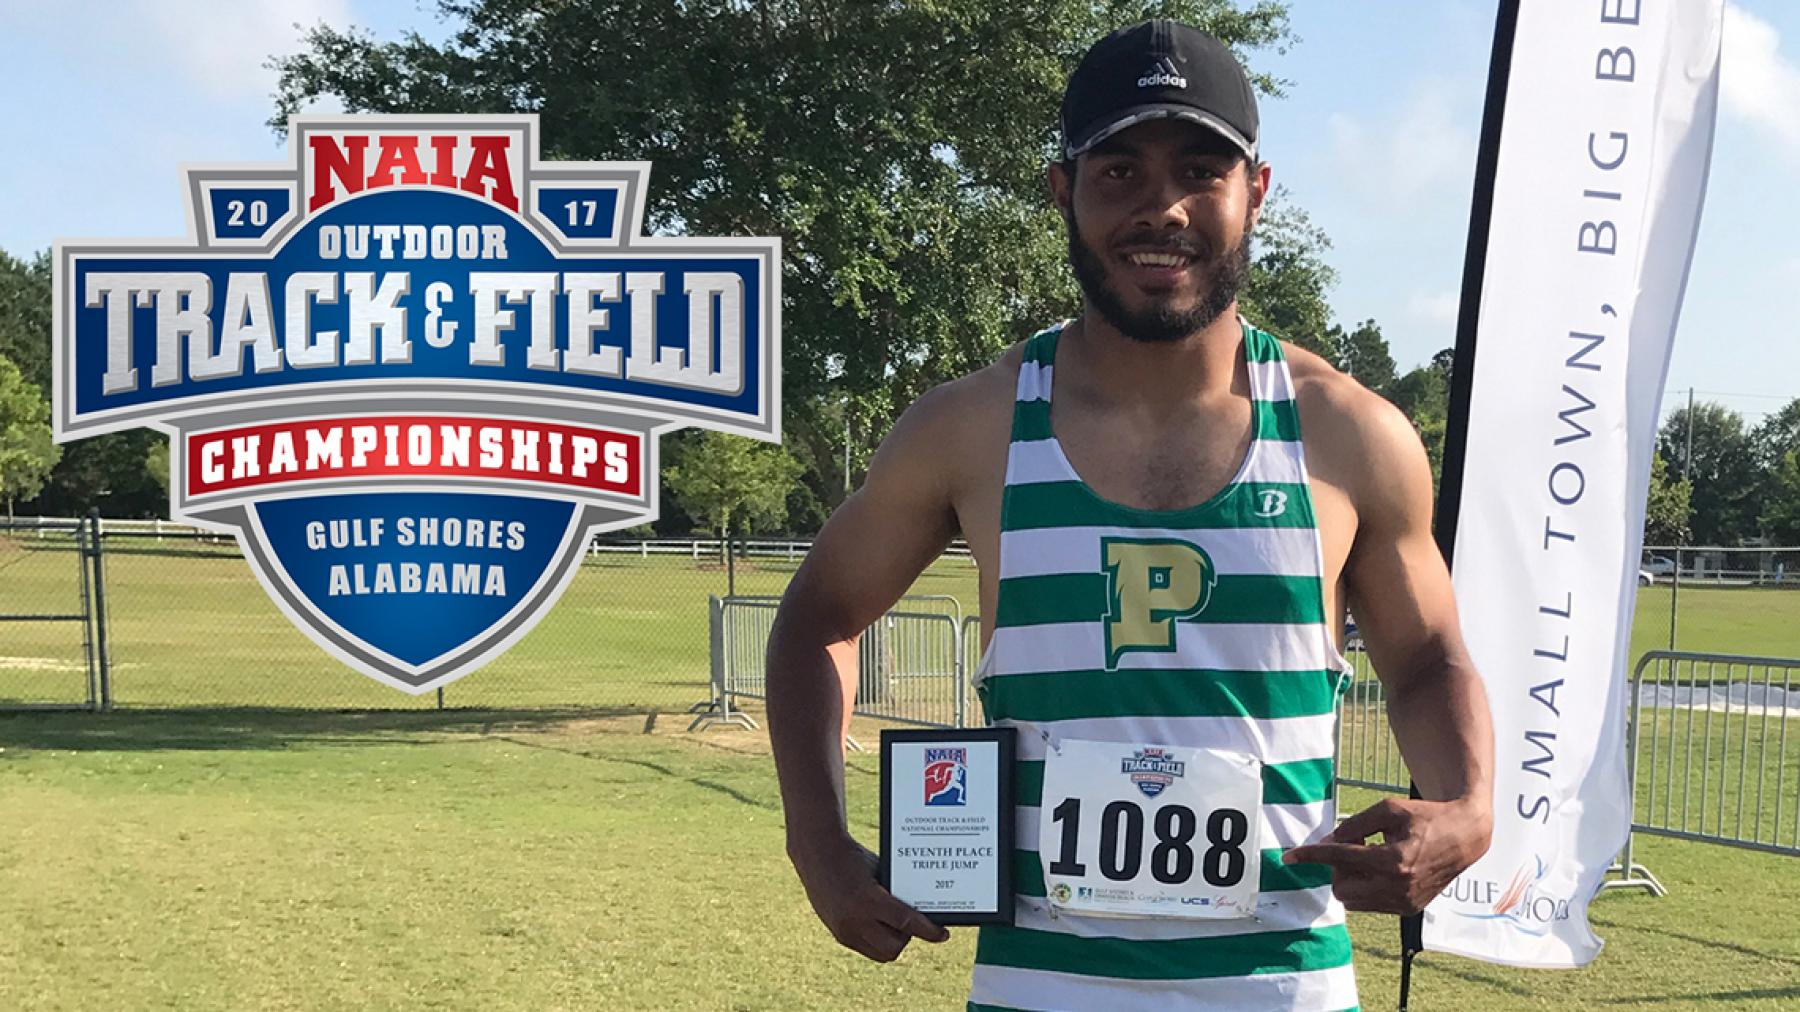 Point Park's Jryi Davis earns NAIA All-American in Triple Jump